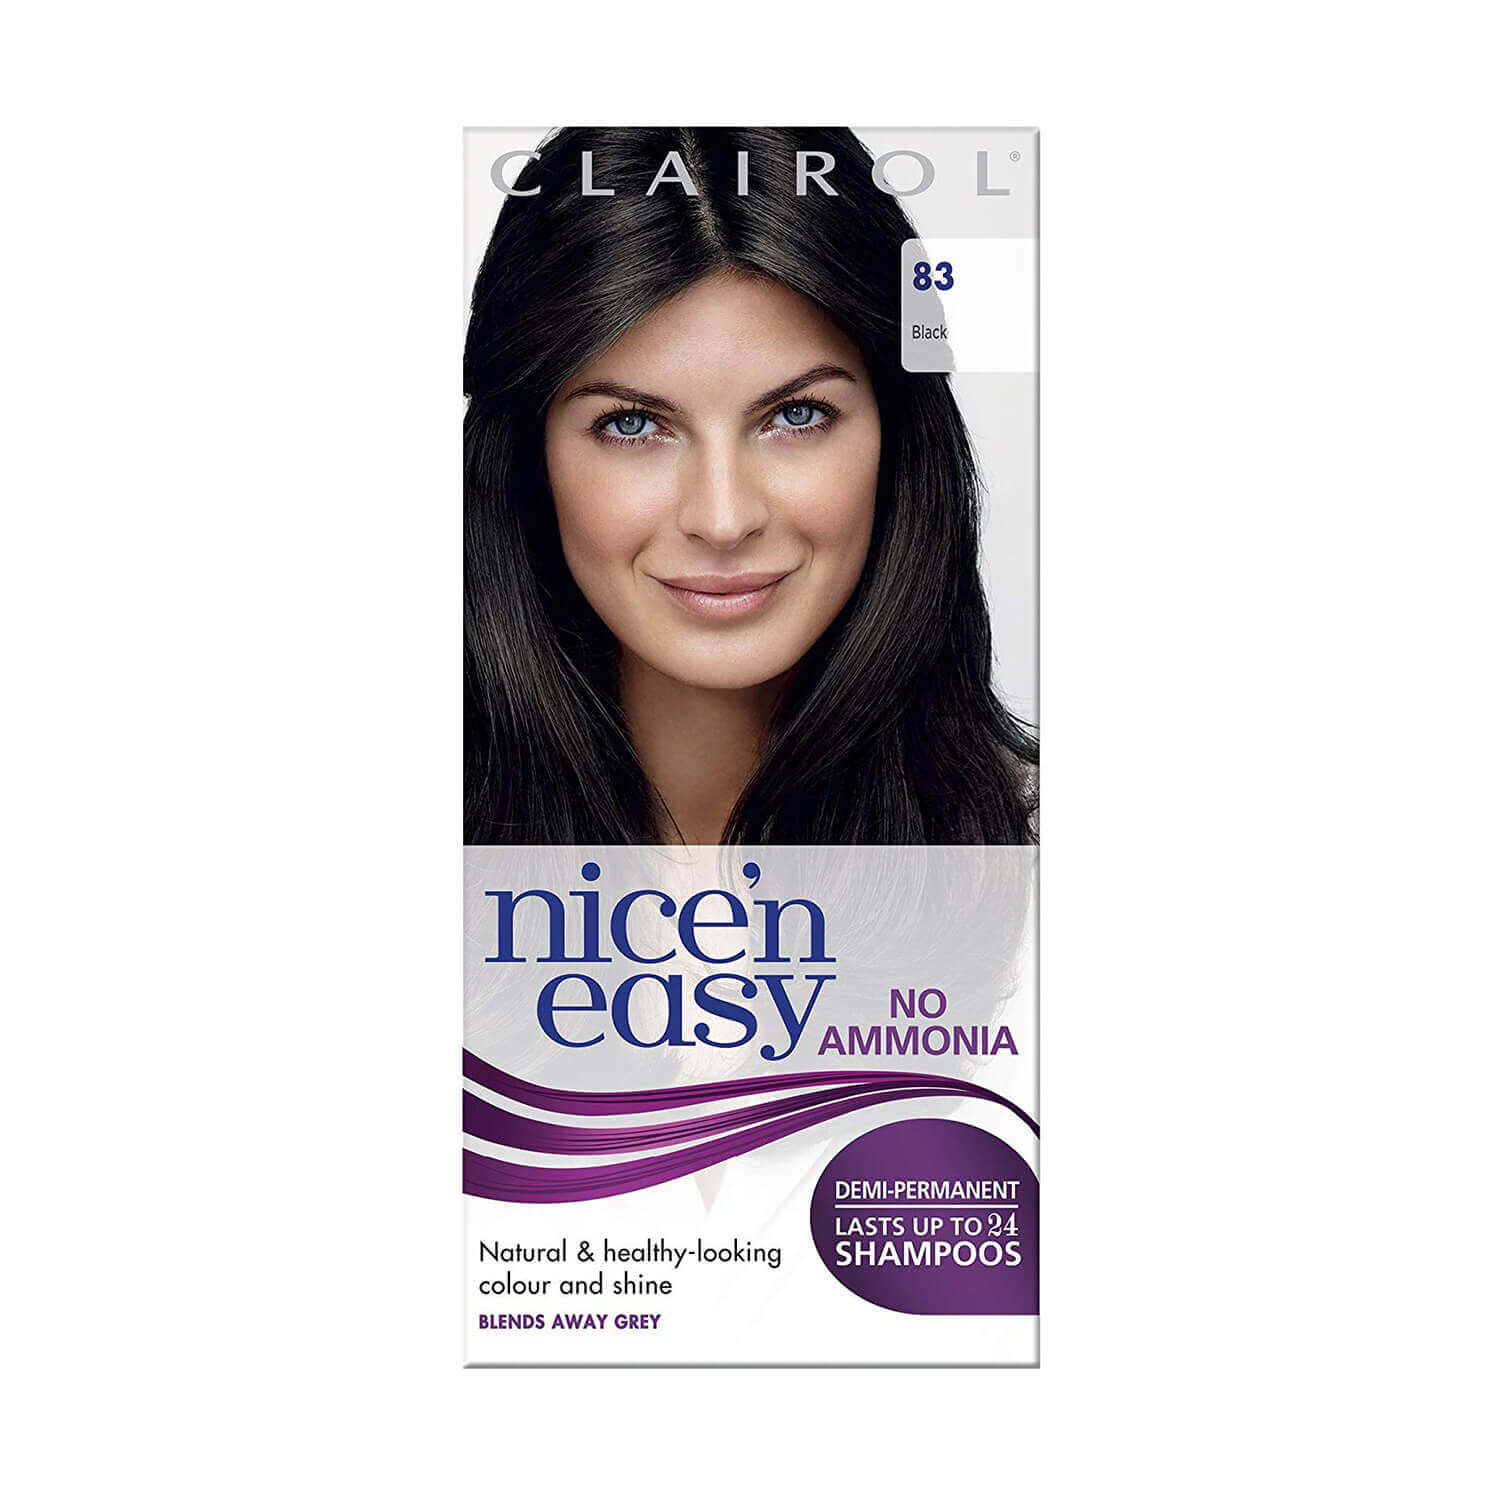 Image of Clairol Nice 'N Easy No Ammonia Hair Dye Black 83